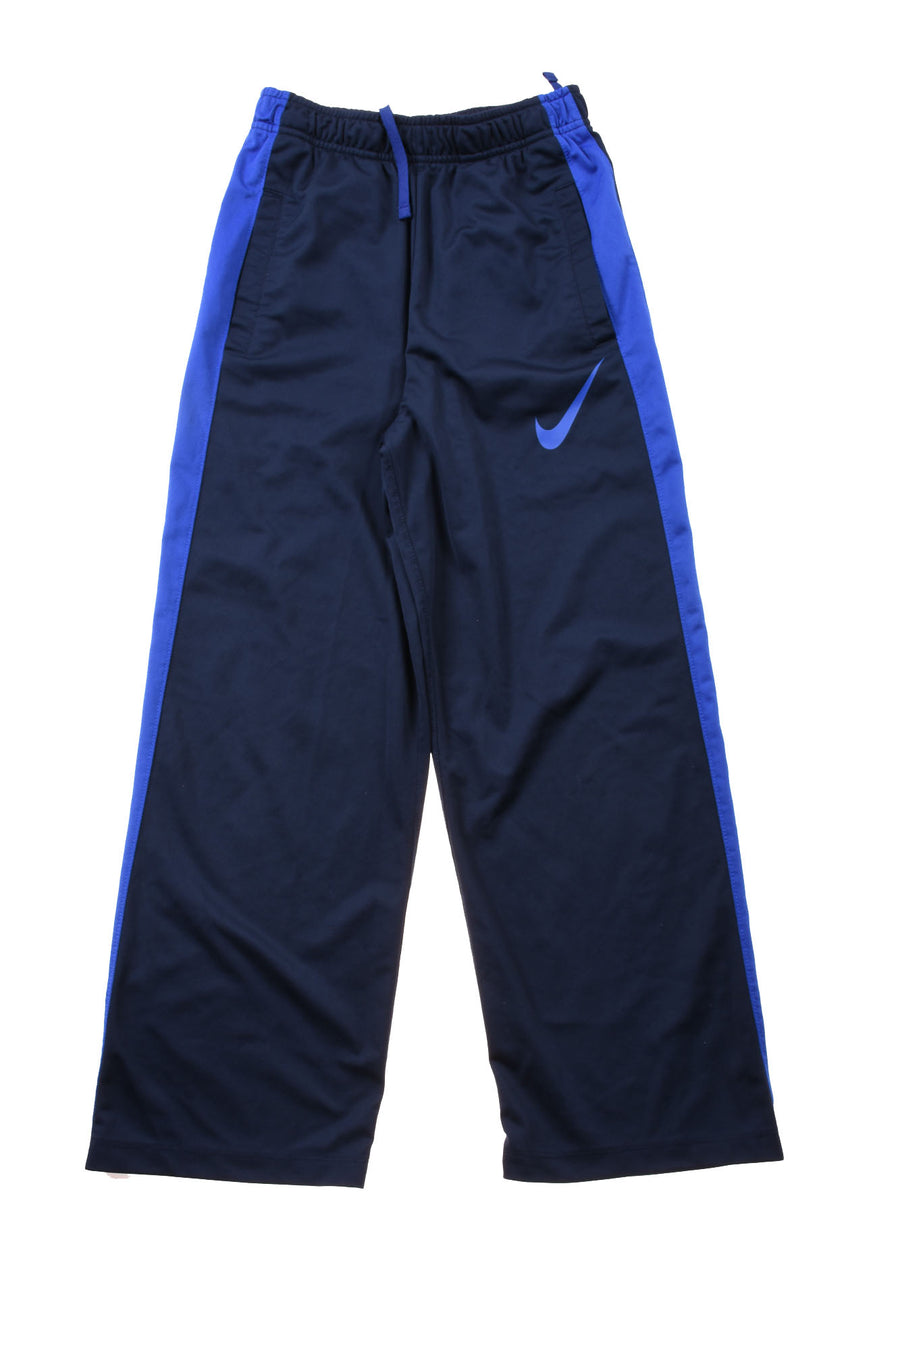 USED Nike Boy's Pants X-Large Blue